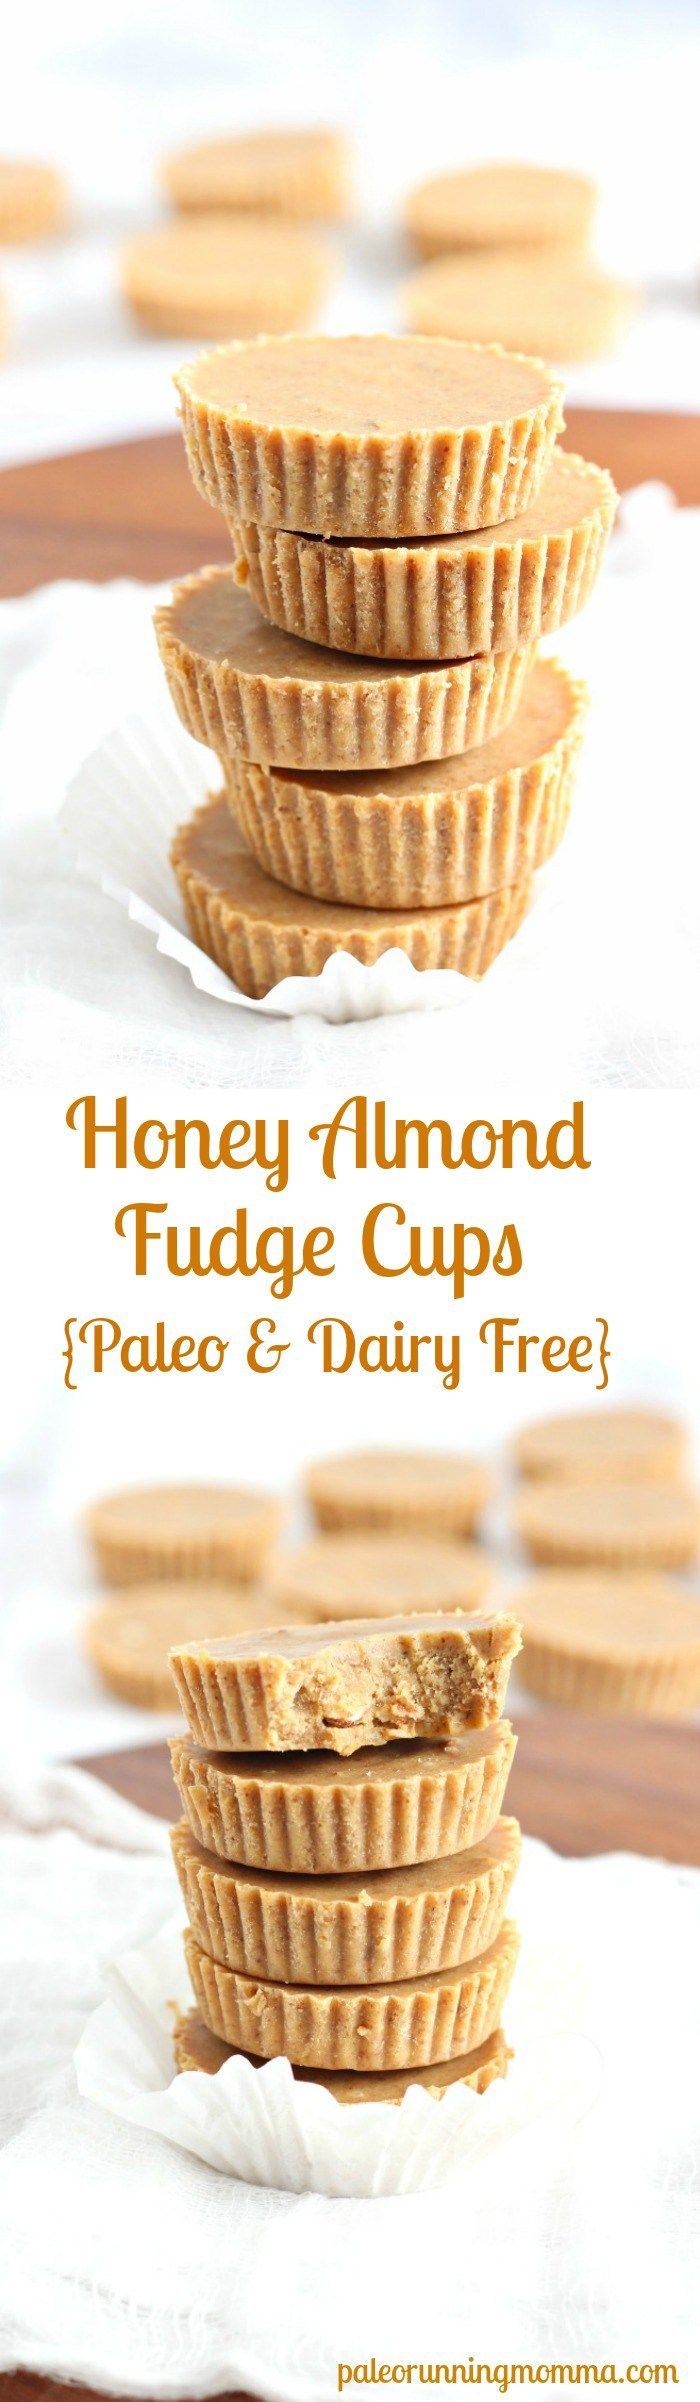 Healthy and super easy 5 ingredient, no cook Honey Almond Fudge Cups! Gluten free, Paleo, dairy free, seriously amazing treat that you won't believe is actually healthy!